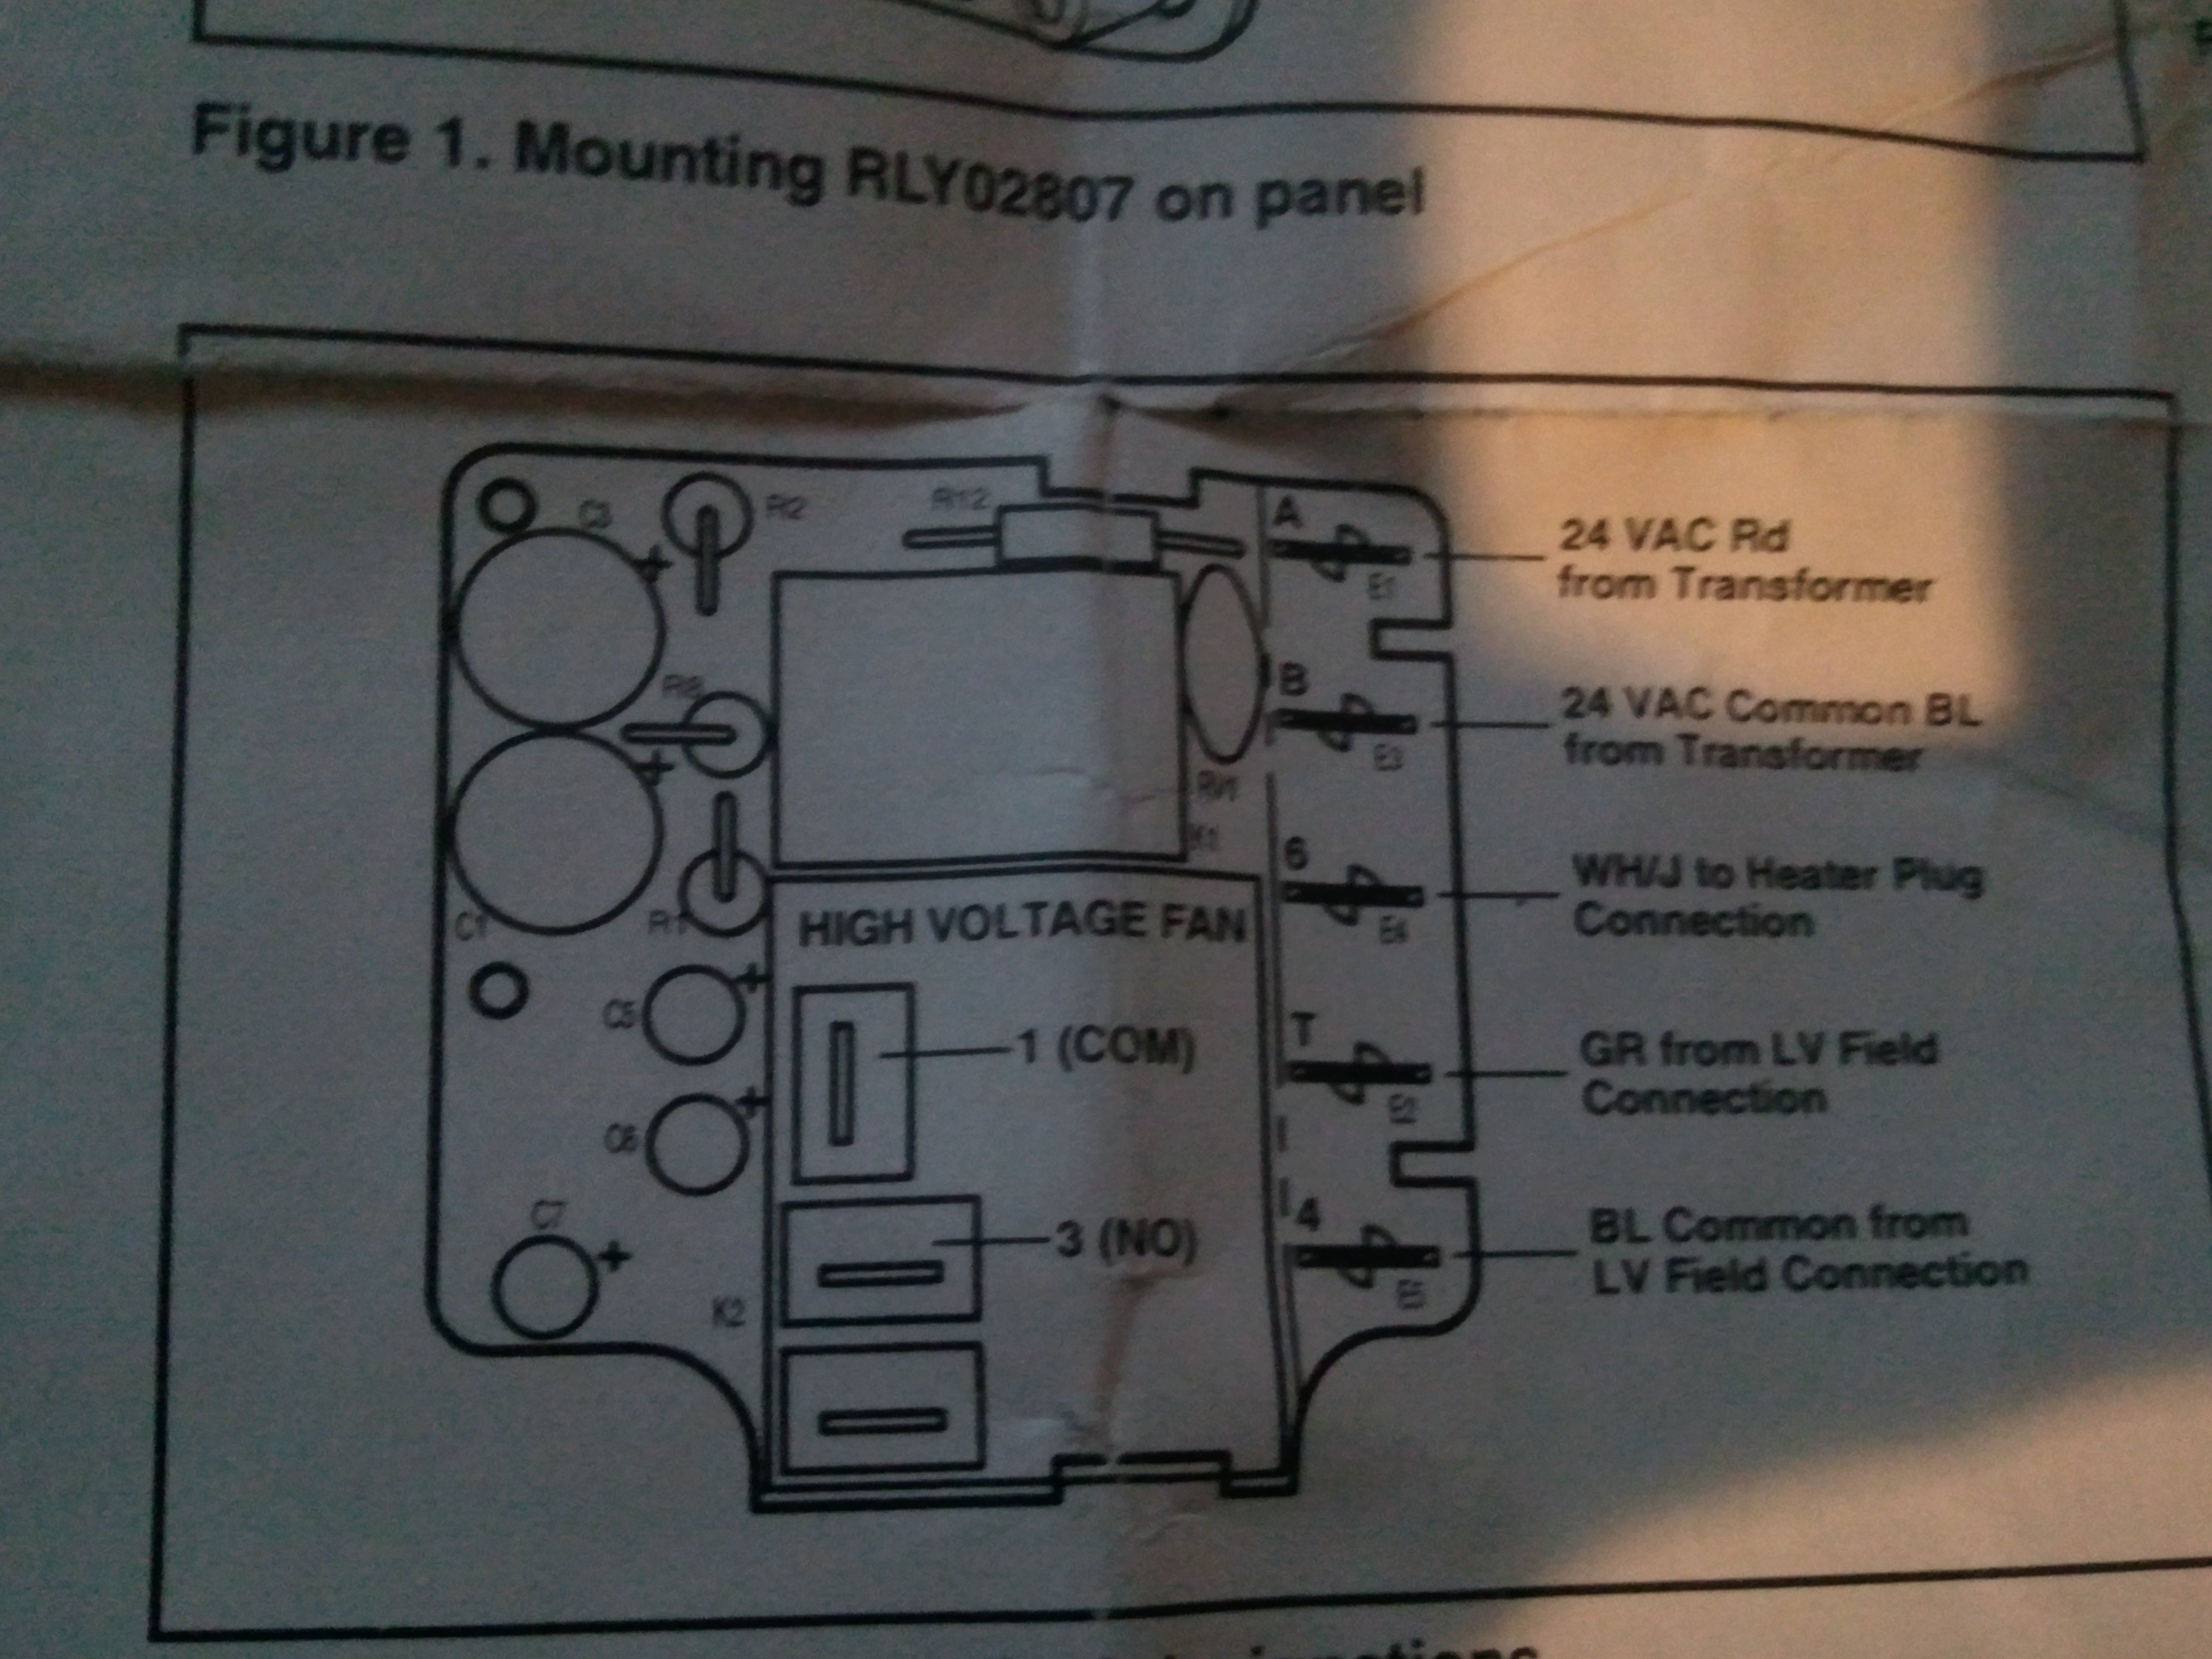 Trane Xl 1200 Wiring Diagram 28 Images Hard Start Kit 2012 03 05 022912 Relay Delay Xl1200 Air Conditioning Gandul 45 77 79 119